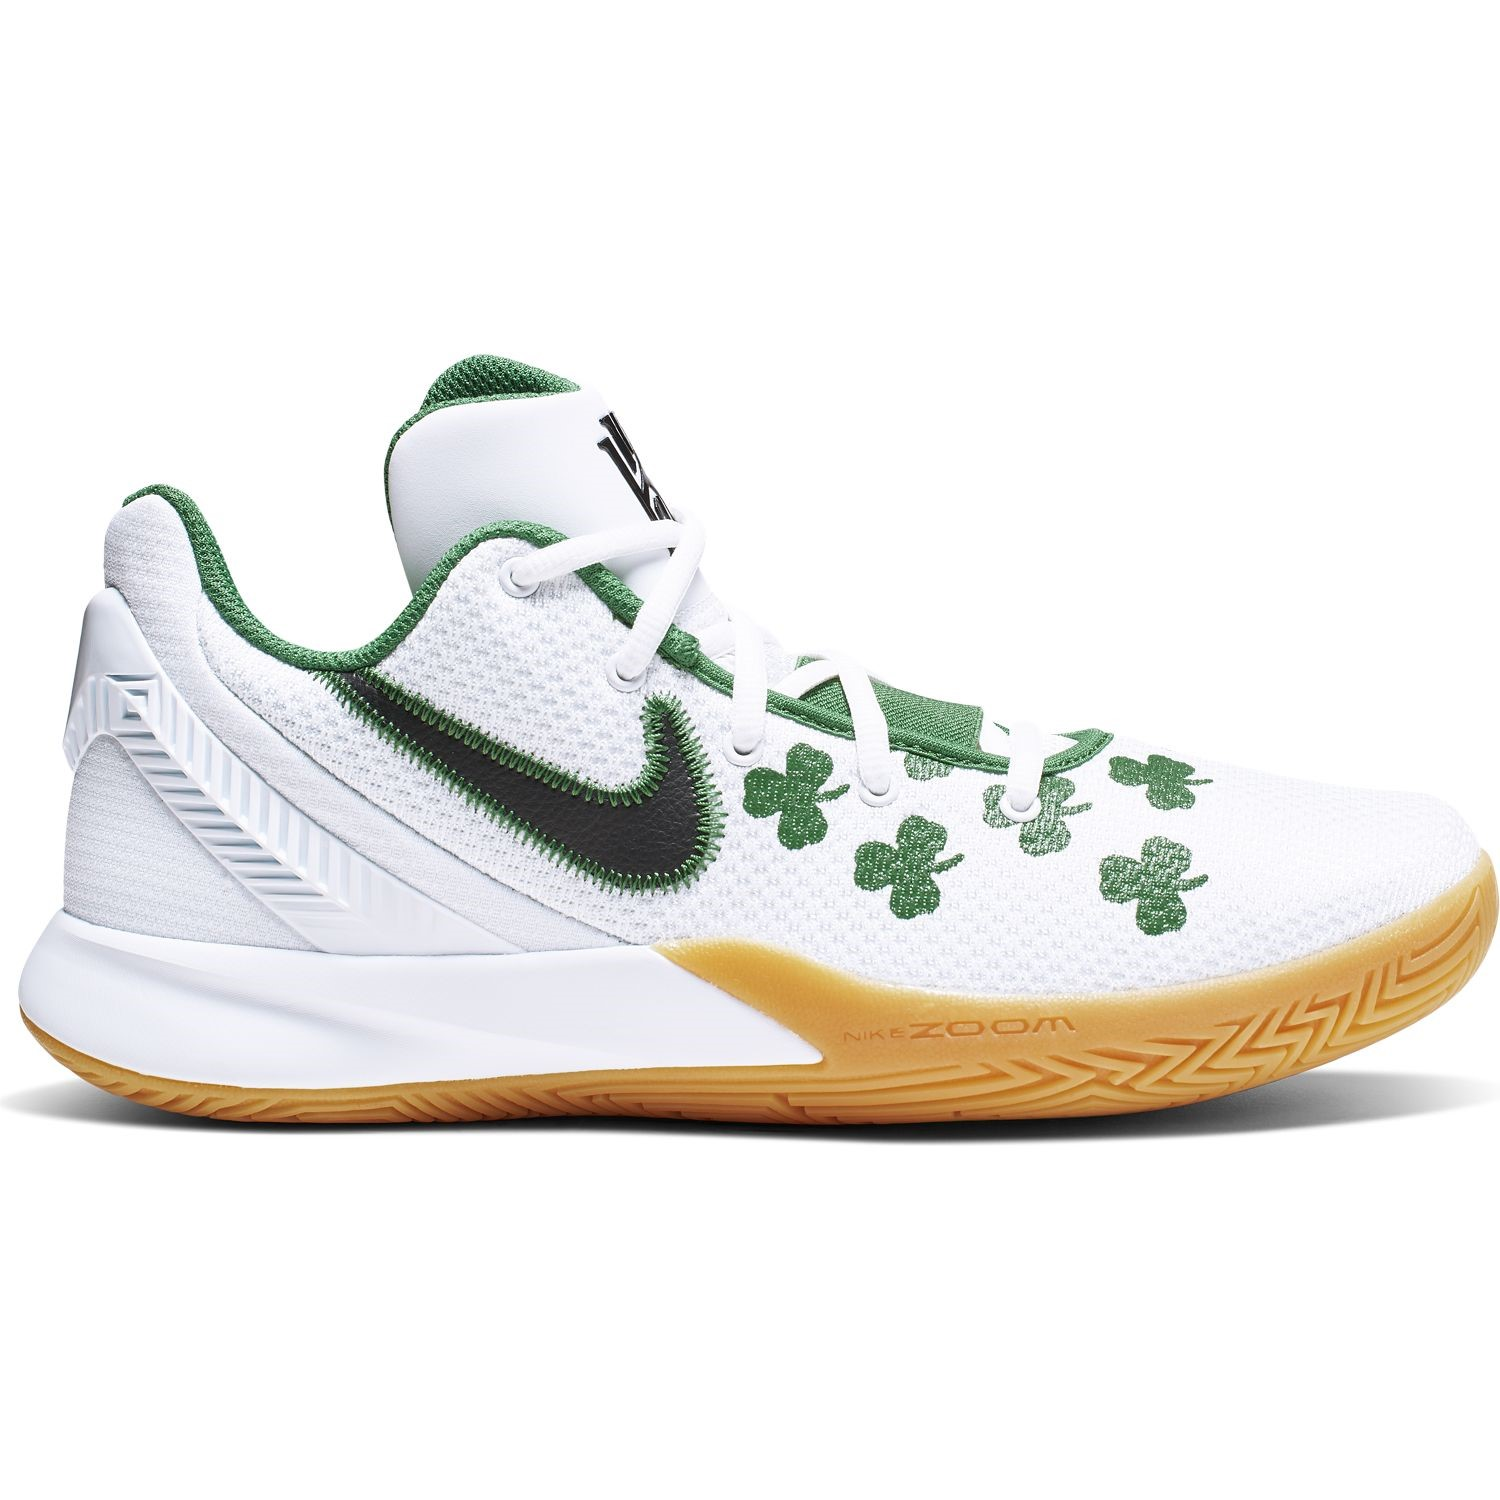 huge selection of b7046 64d15 Nike Kyrie Flytrap II Boston Celtics - Mens Basketball Shoes